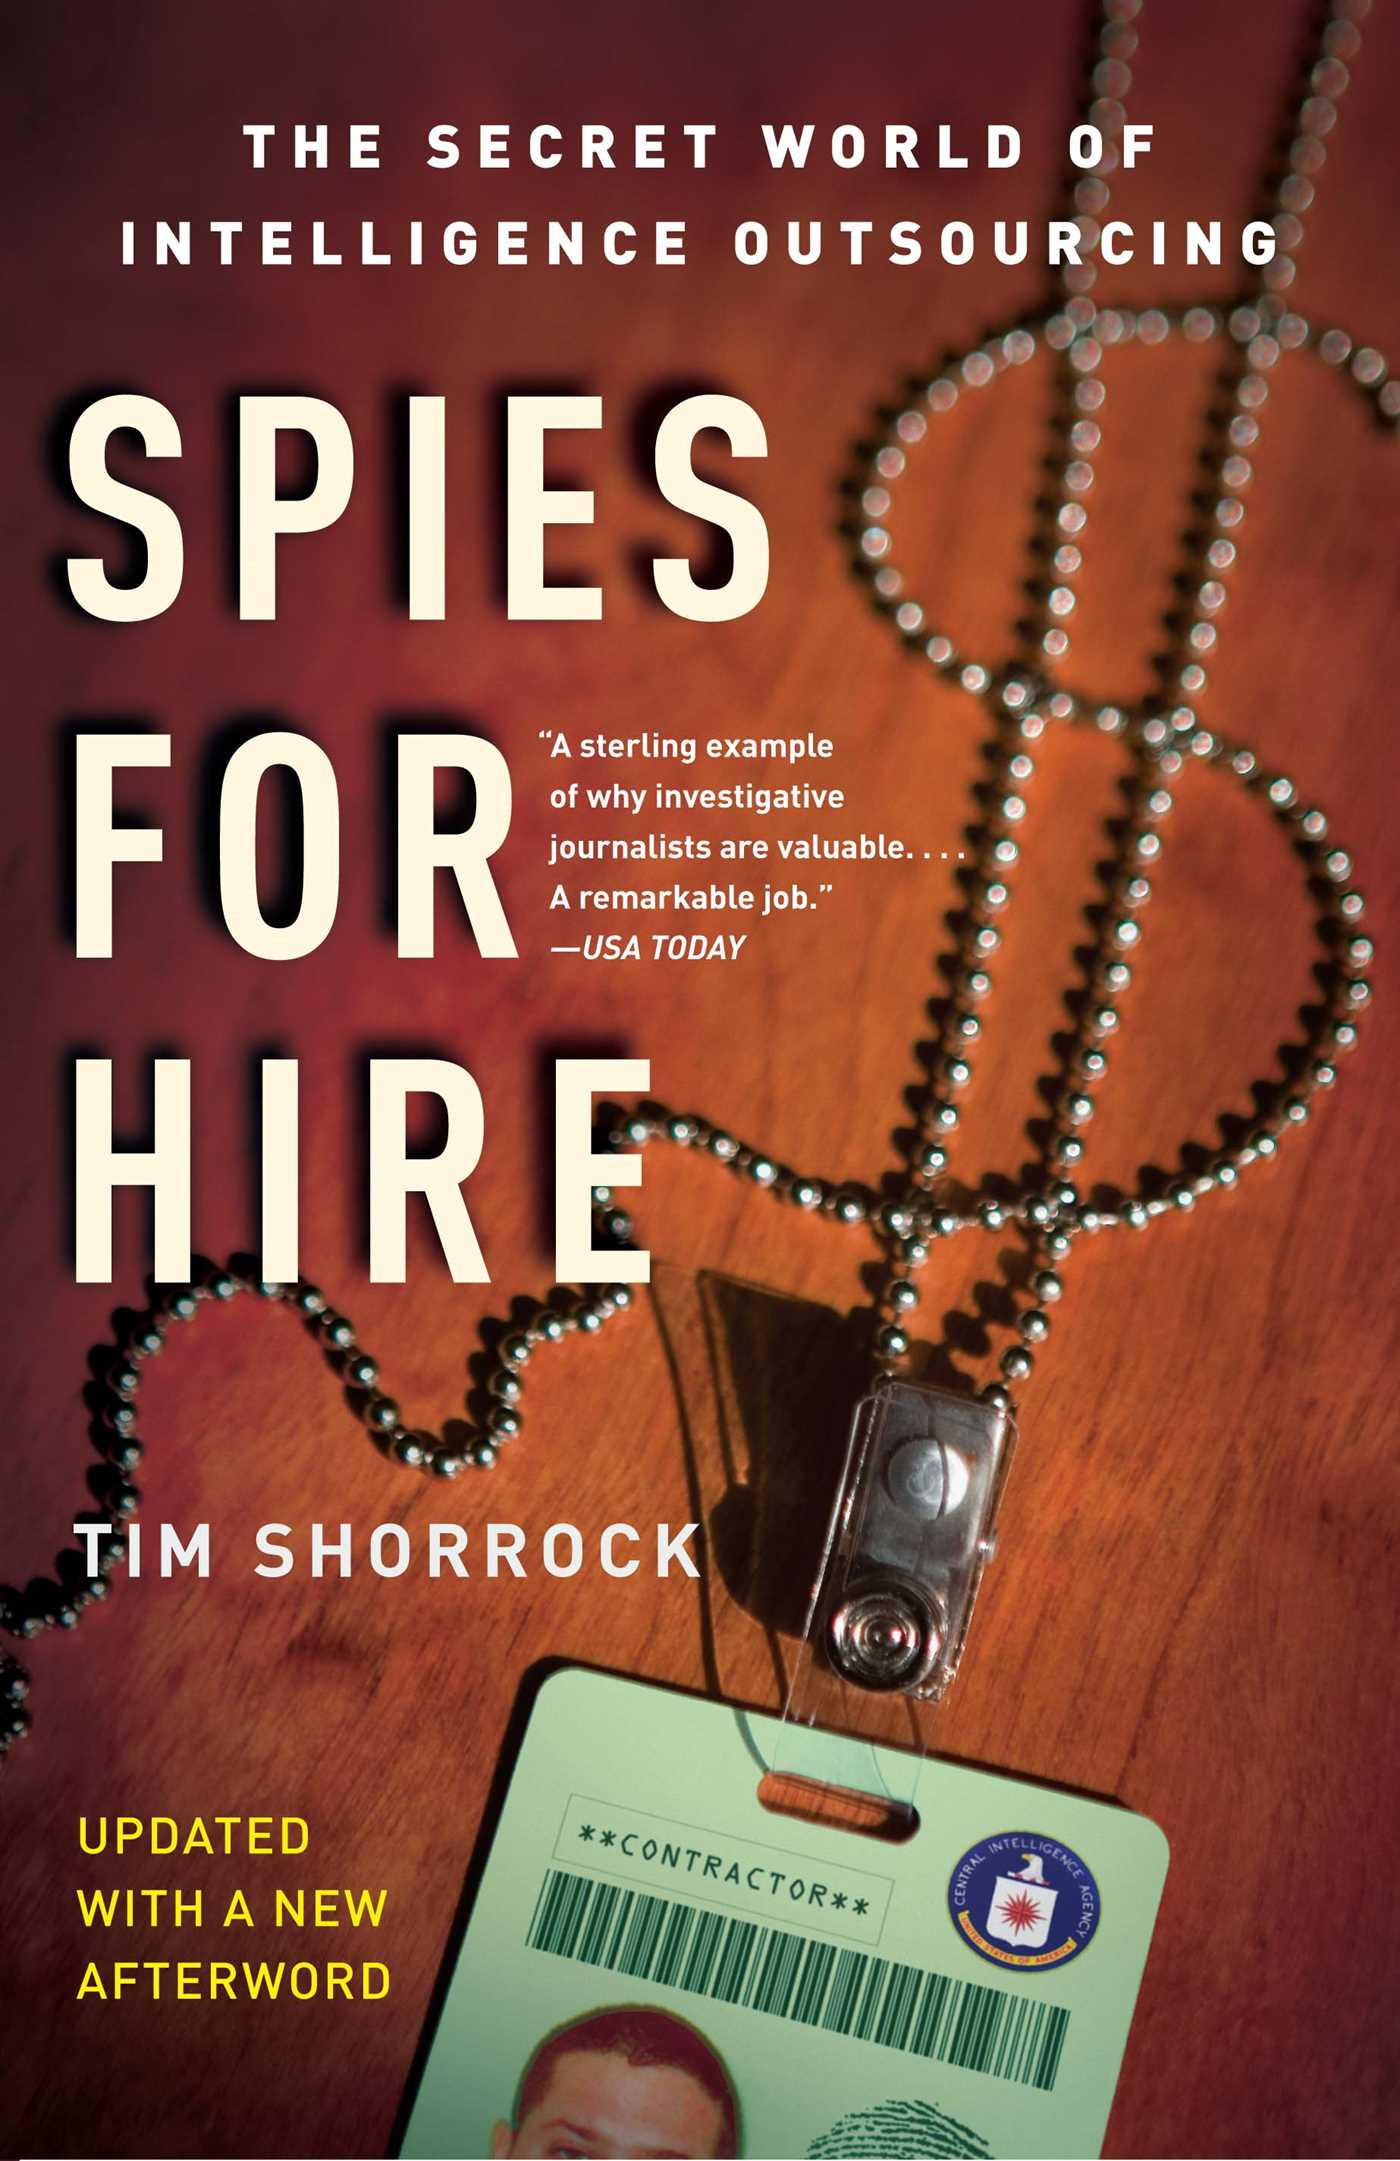 Spies for hire 9780743282253 hr